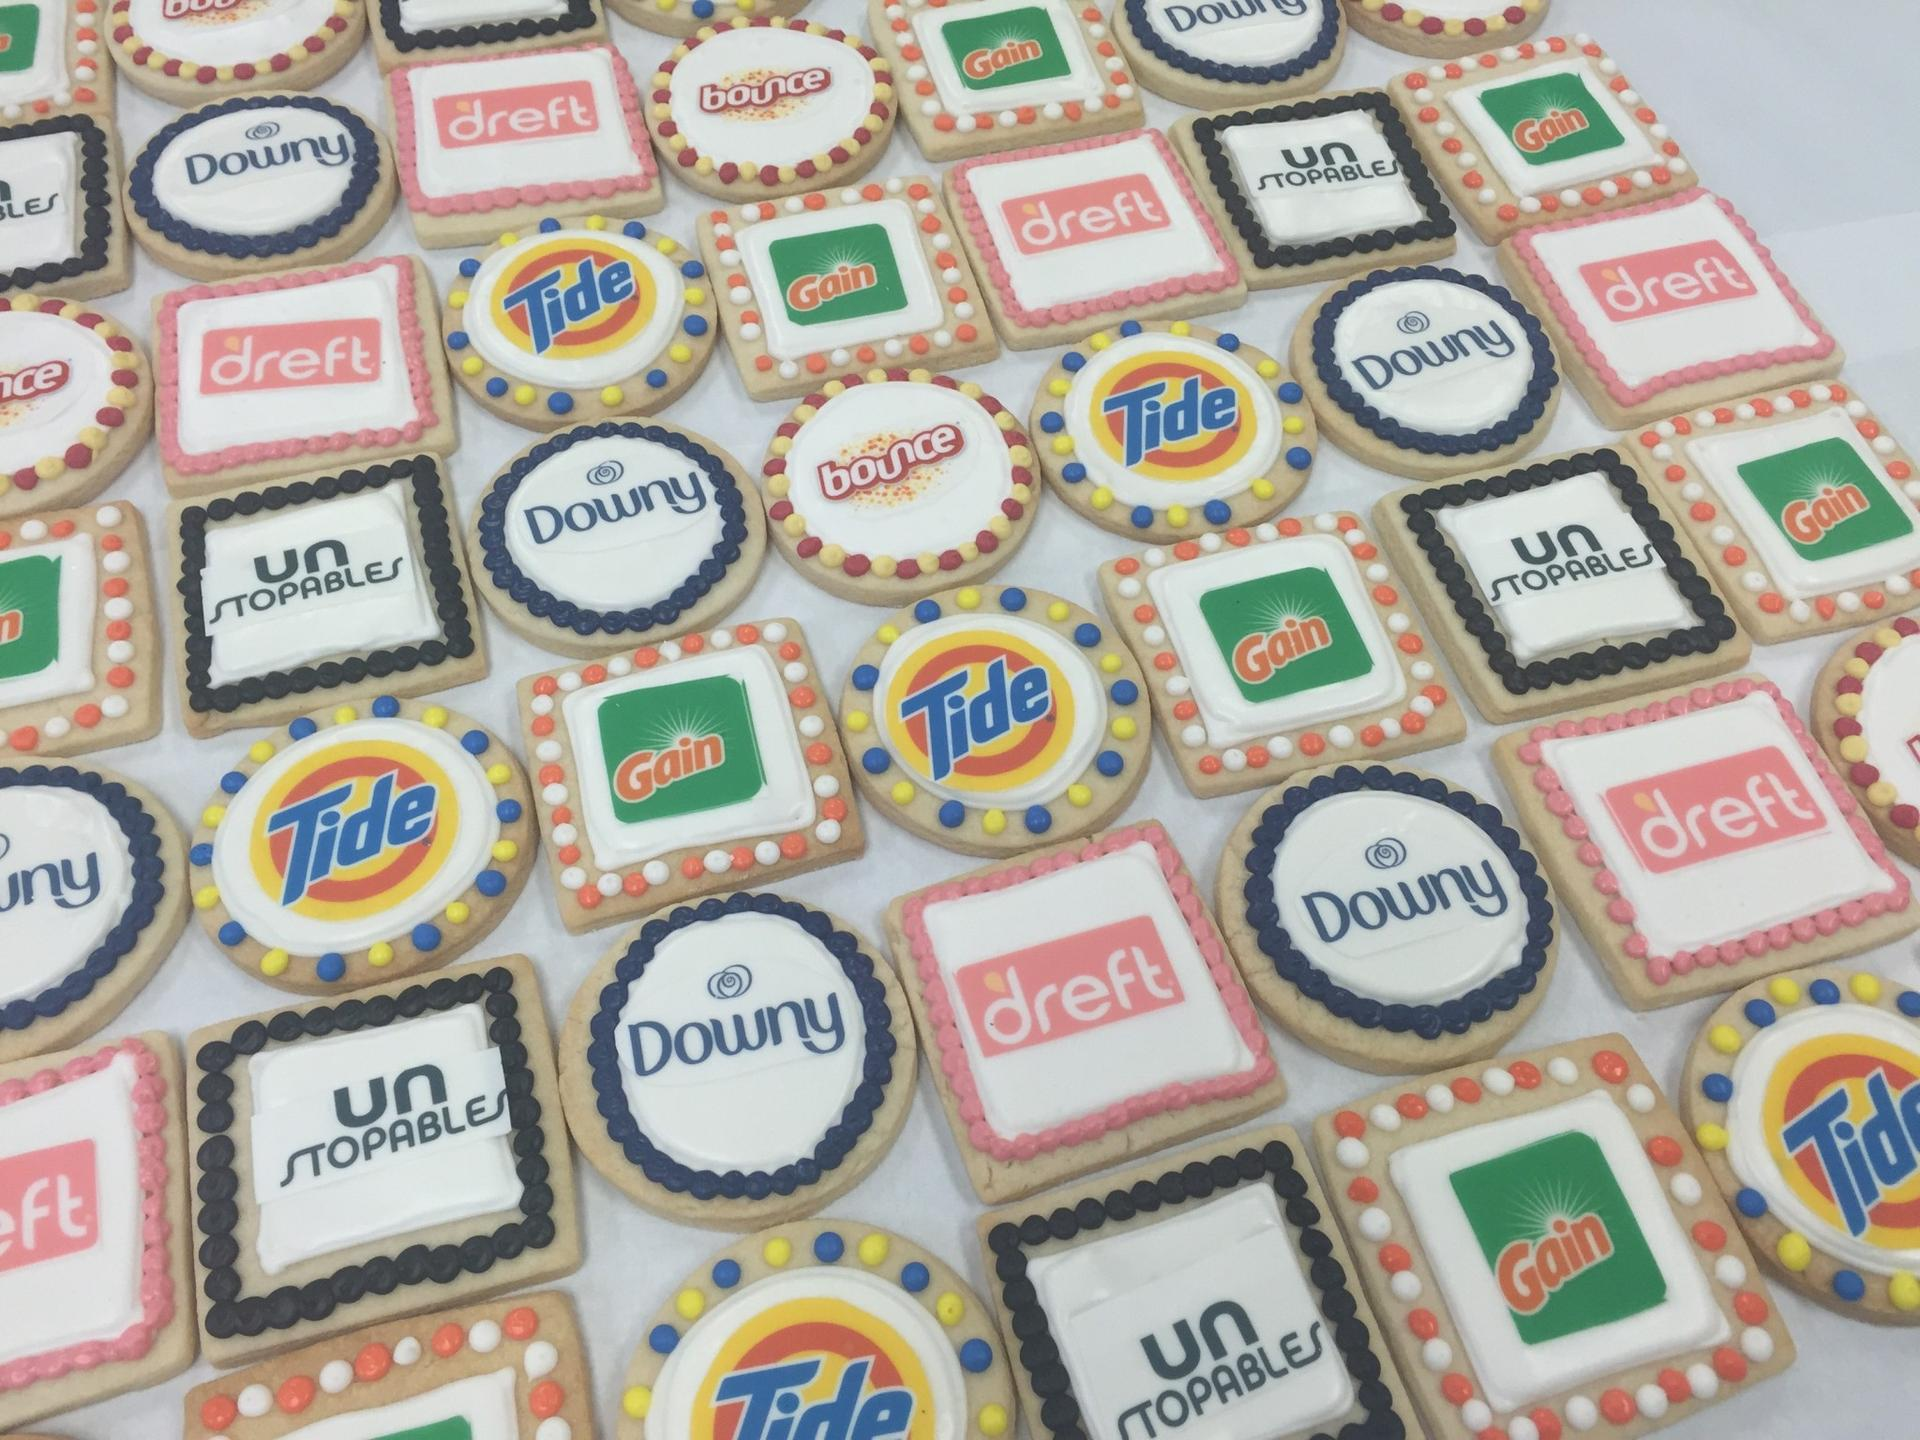 P and G Brand Logo Cookies